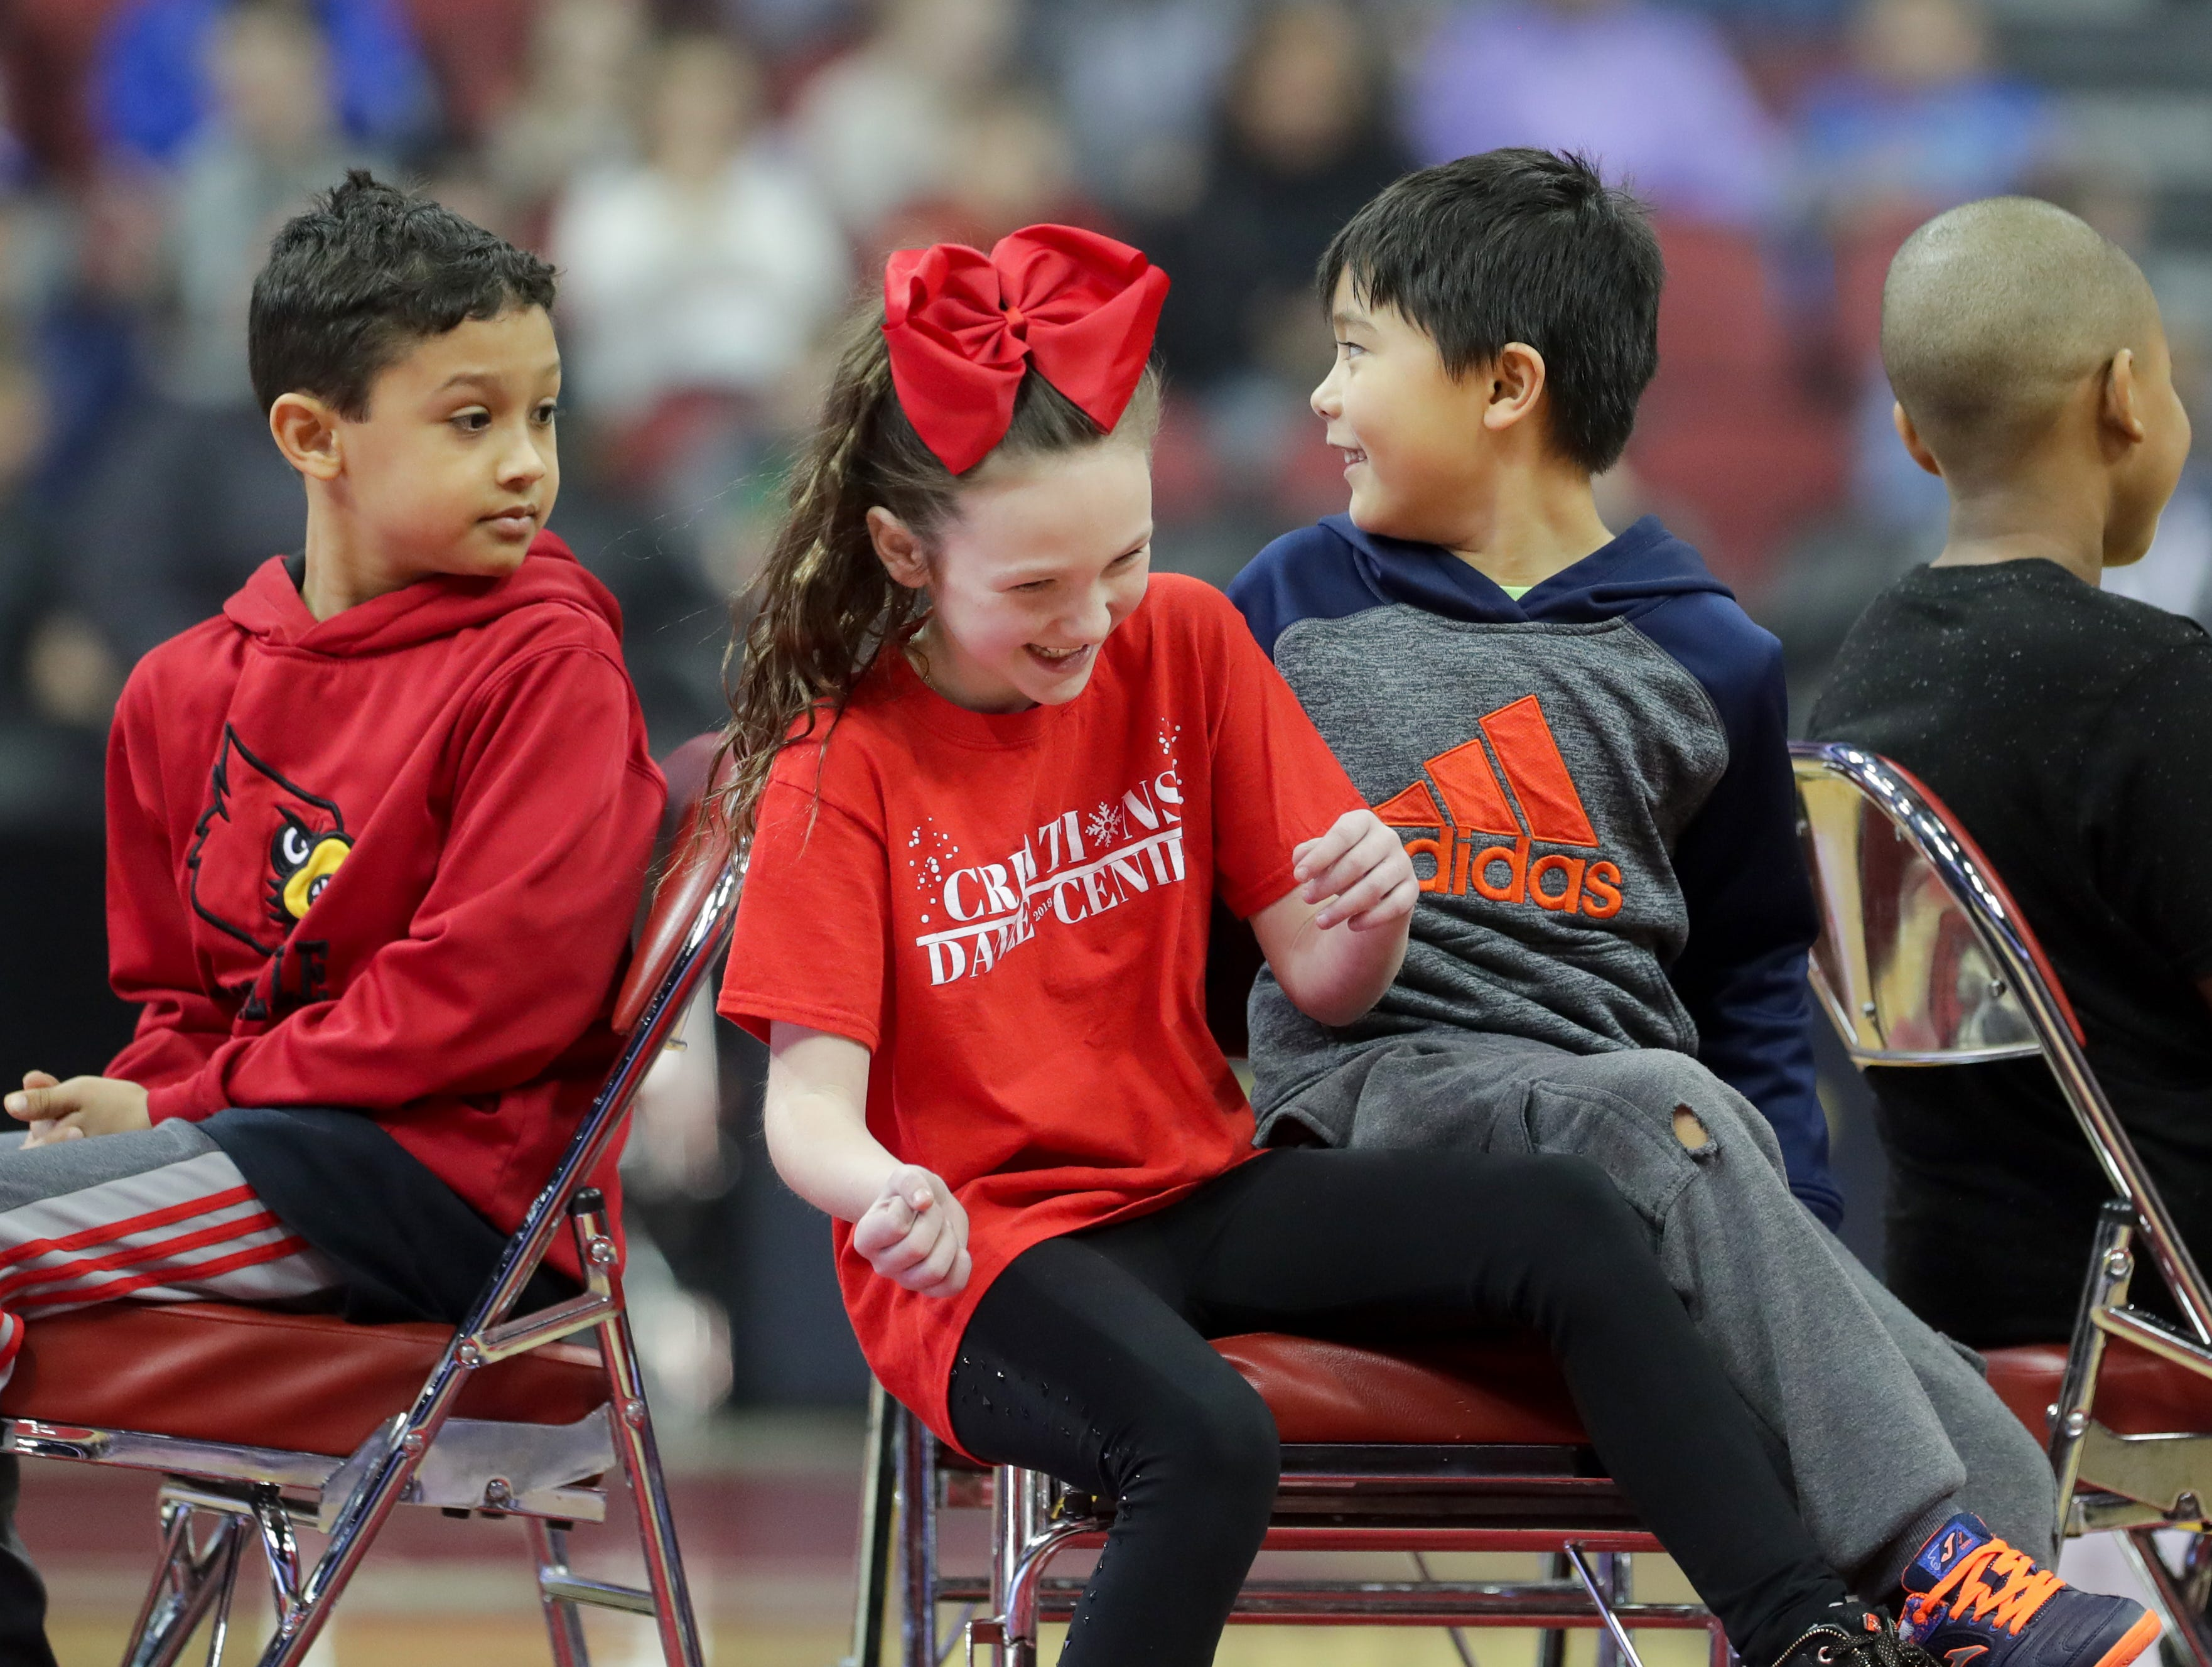 Kids play musical chairs before the Harlem Globetrotters game began. Jan. 19, 2019